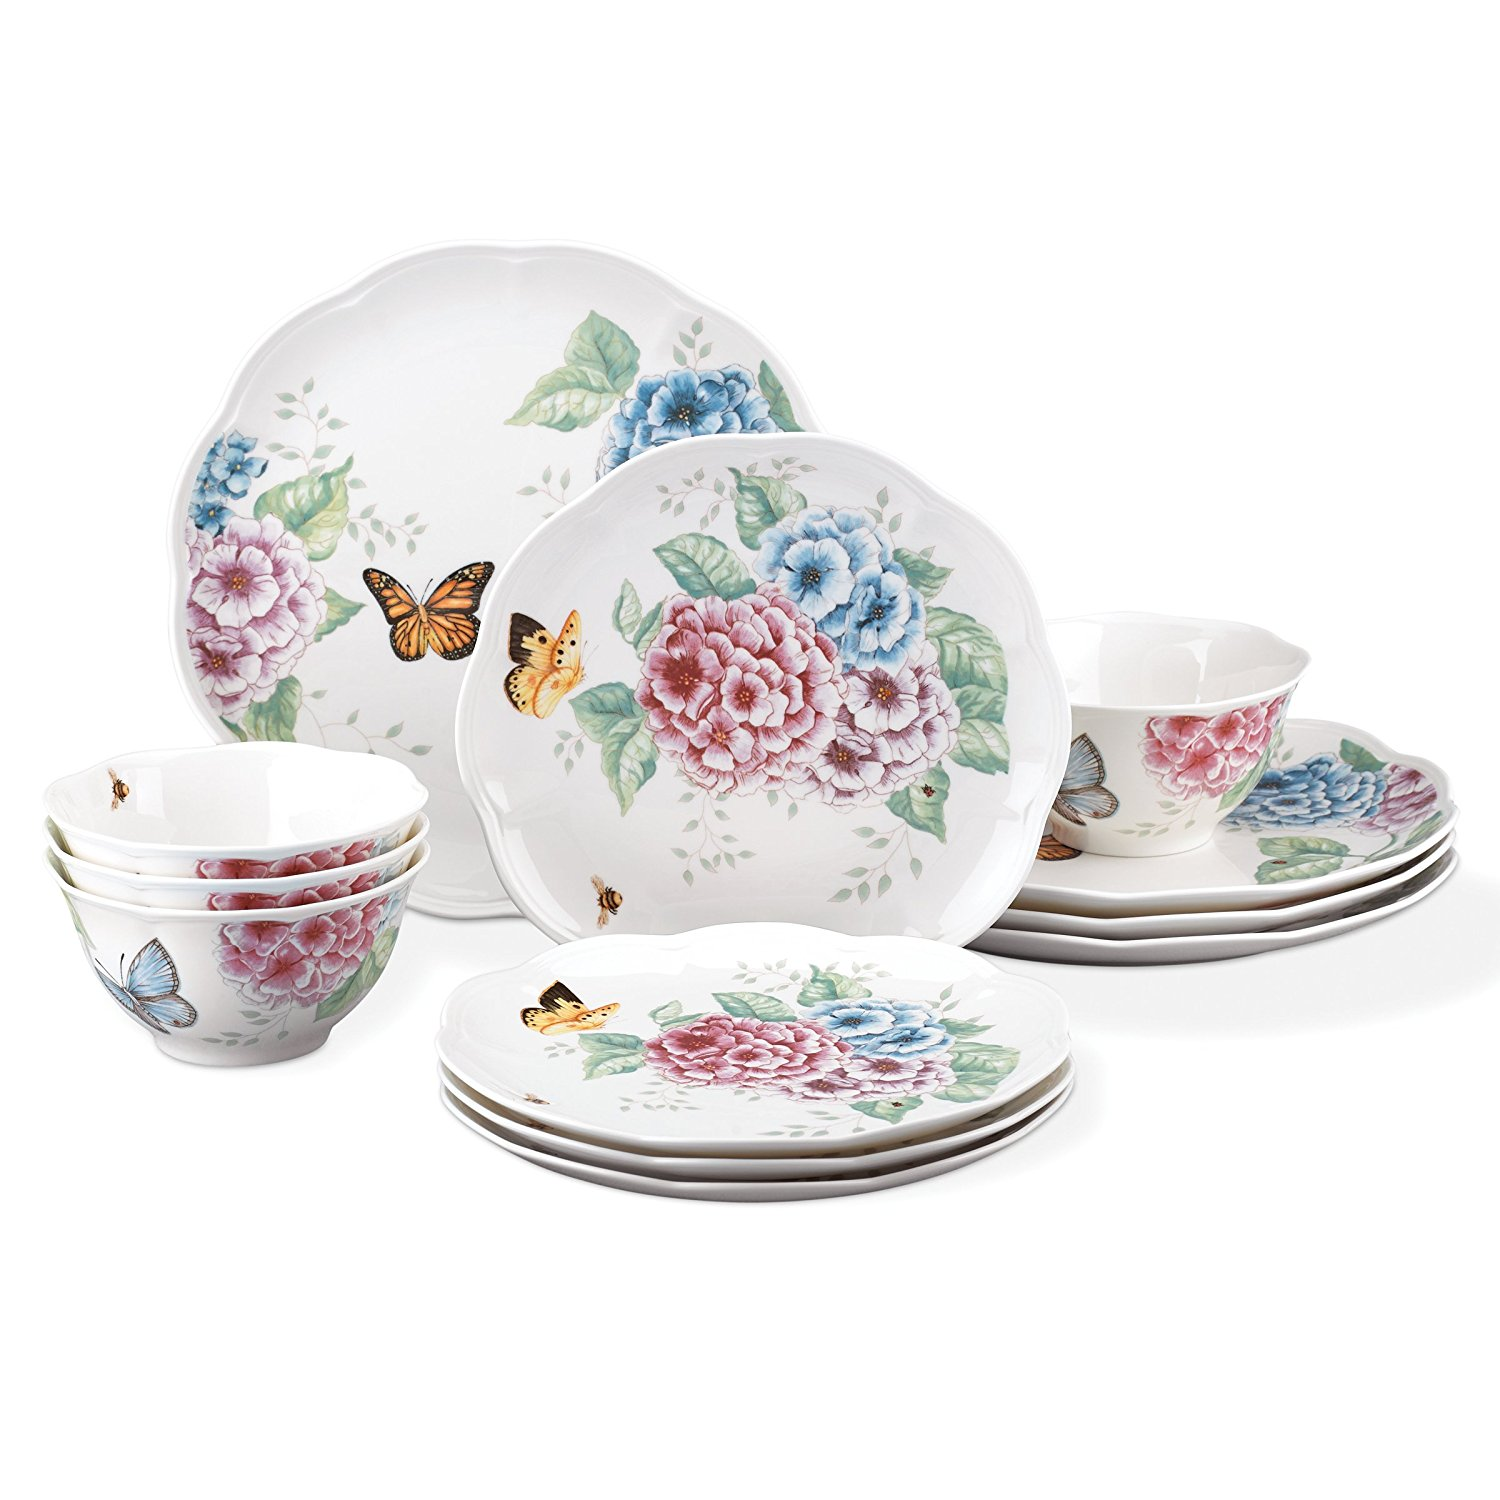 Cheery Just Freeshipping Dinnerware Hot Deals Fine China Tea Sets Fine China Tea Sets Uk Lenox Piece Butterfly Meadow Hydrangea Set houzz-02 Fine China Sets